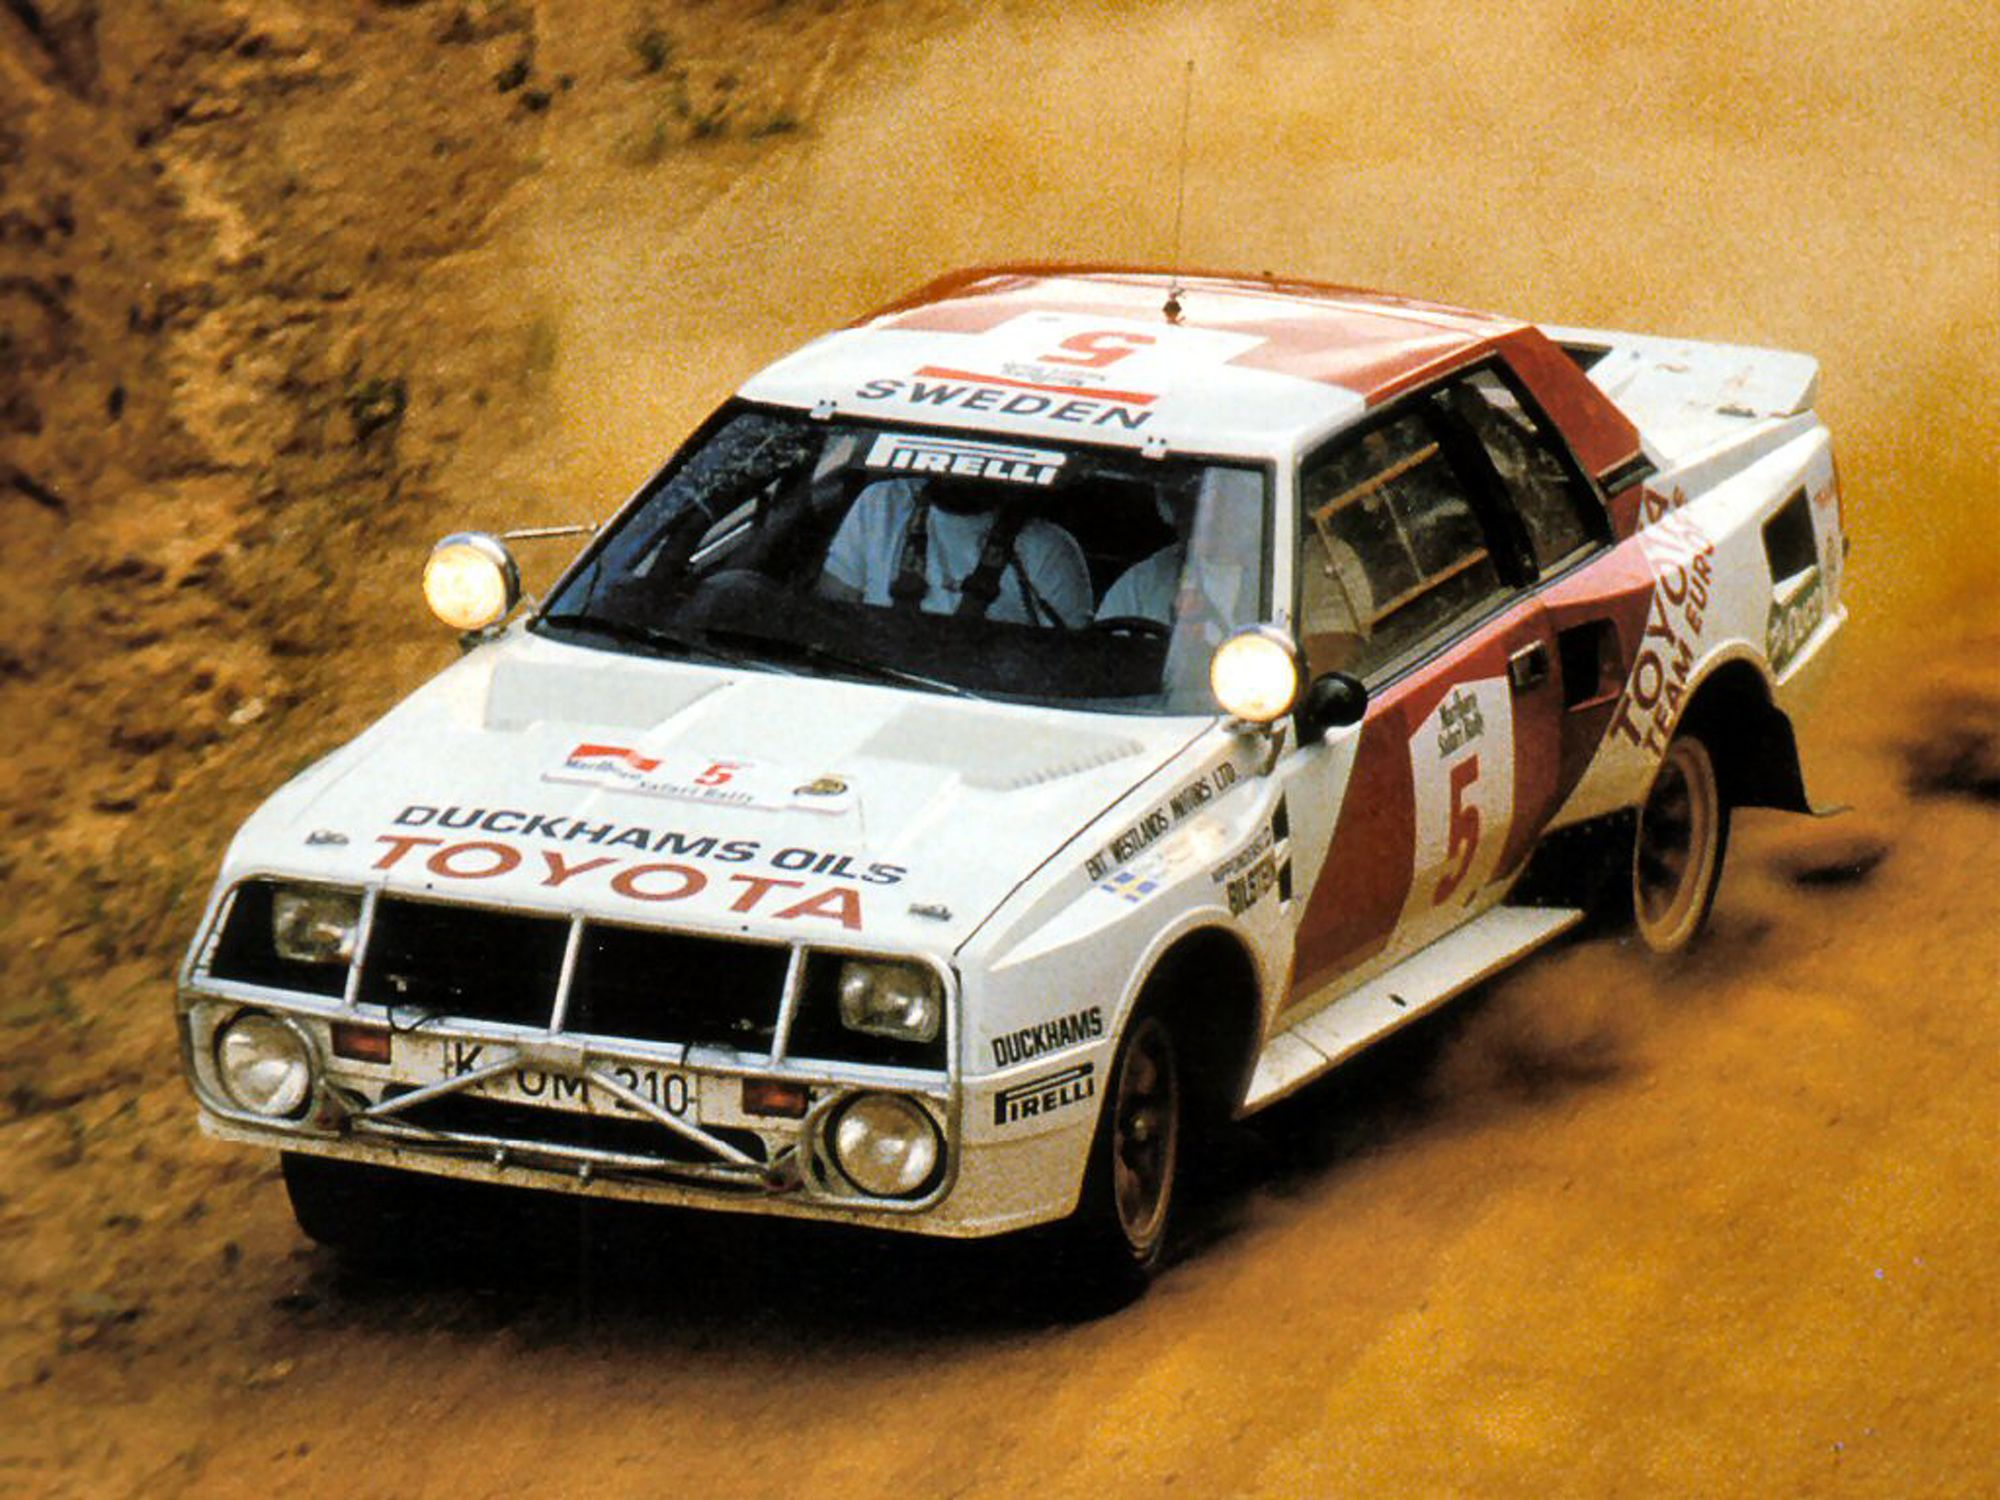 Group B Cars That Never Raced